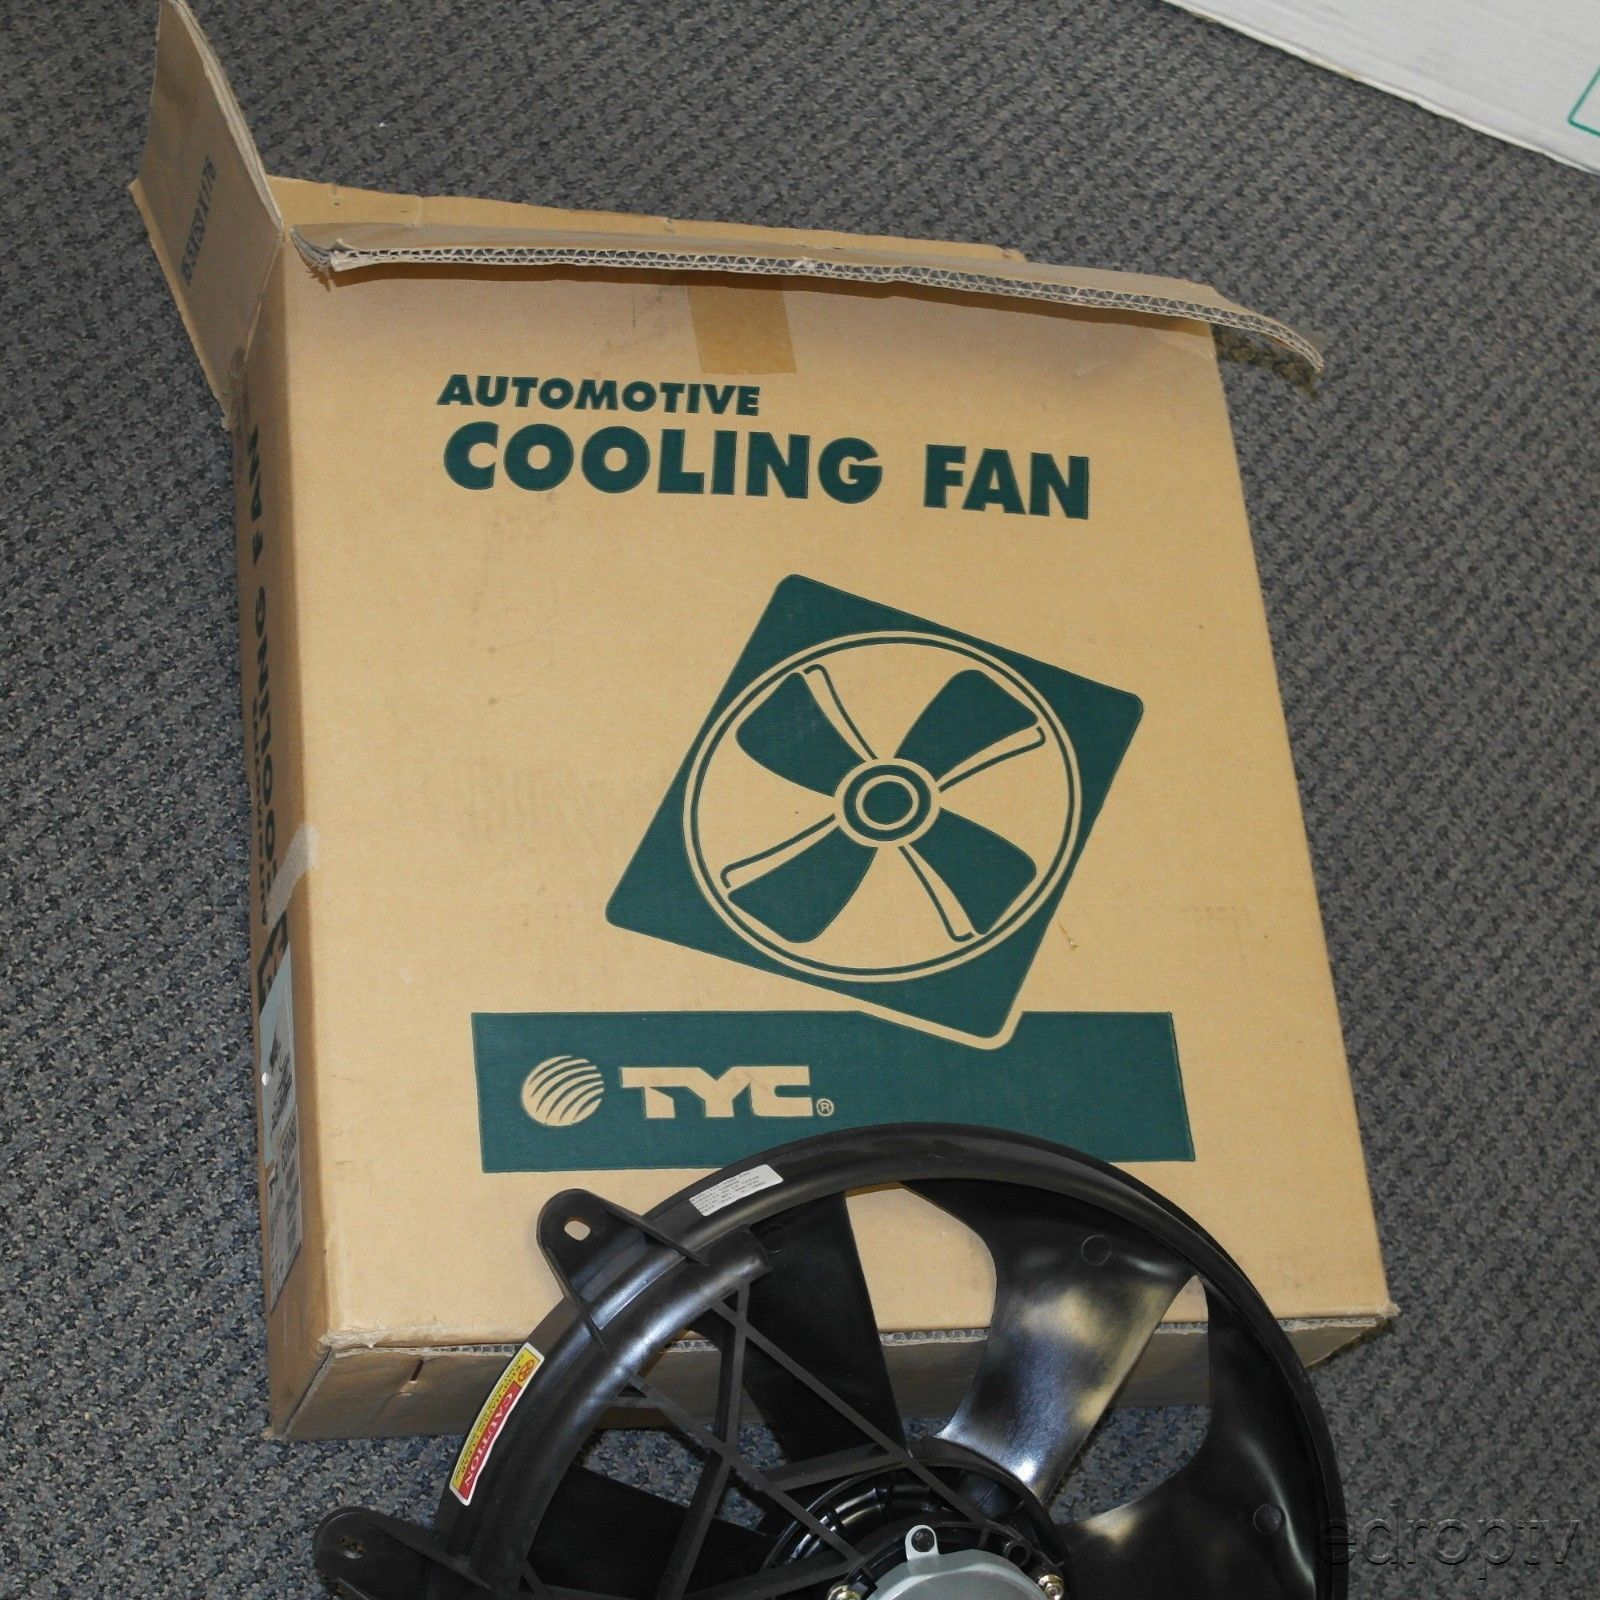 Engine Cooling Fan Assembly TYC 620080 91 92 Chrysler Caravan